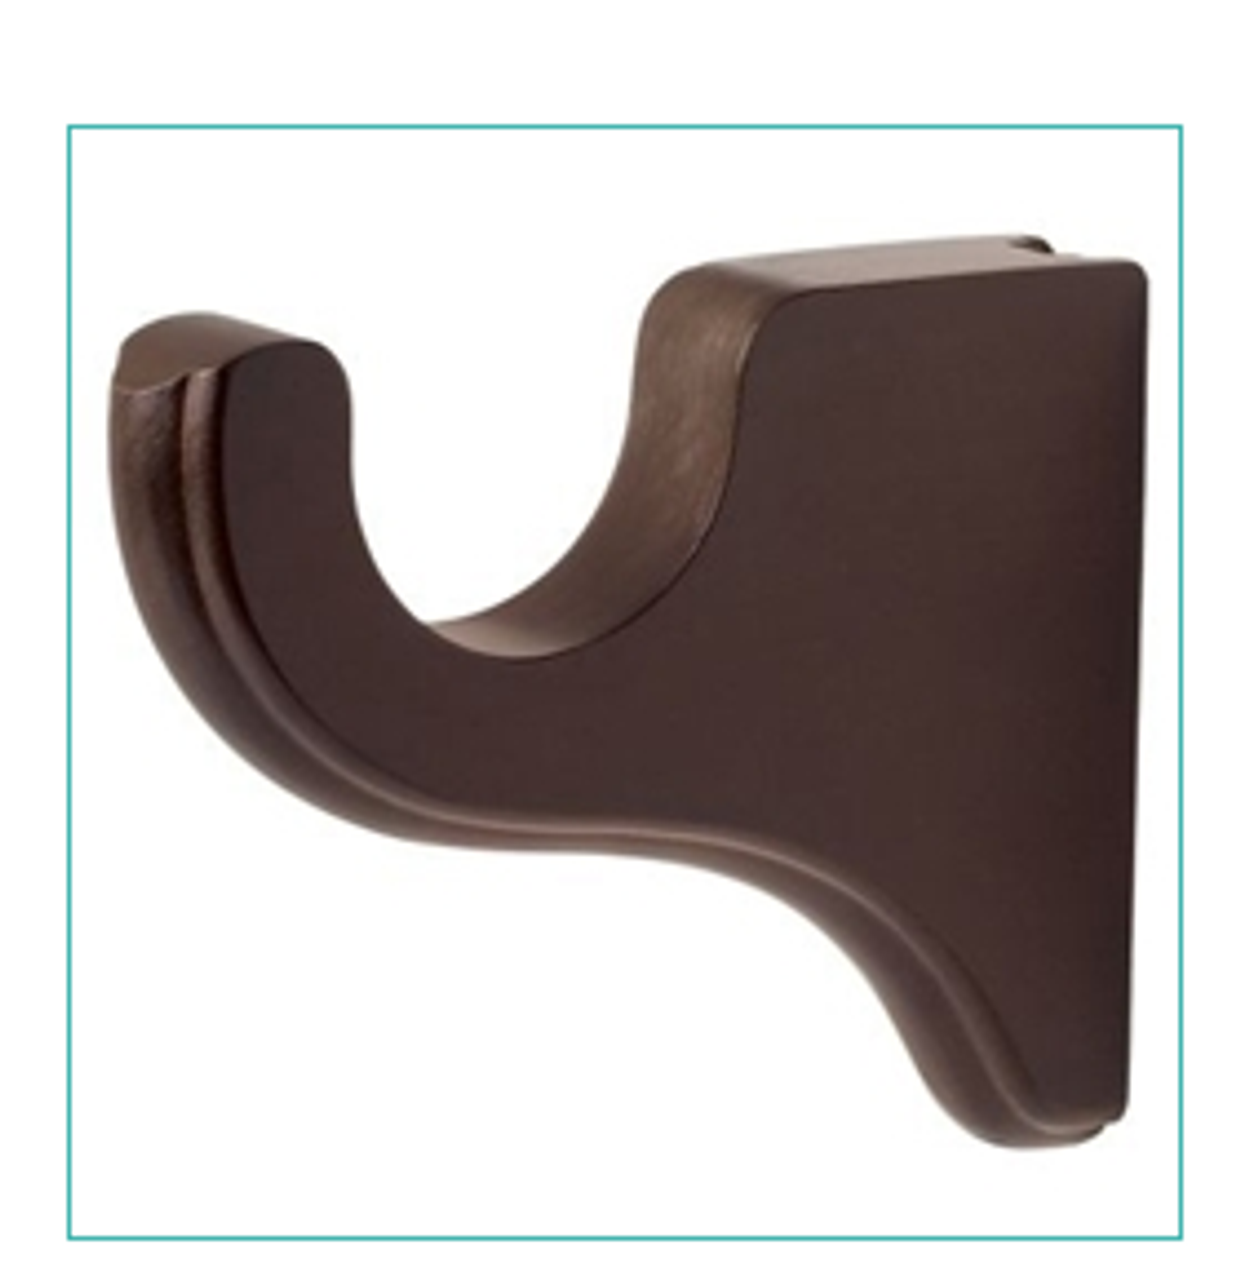 """Kirsch #5611EG Wood Trends 3 1/2"""" Return Bracket For 1 3/8"""" Diameter Drapery Rods -  Sold Individually - Available in a variety of colors & finishes"""